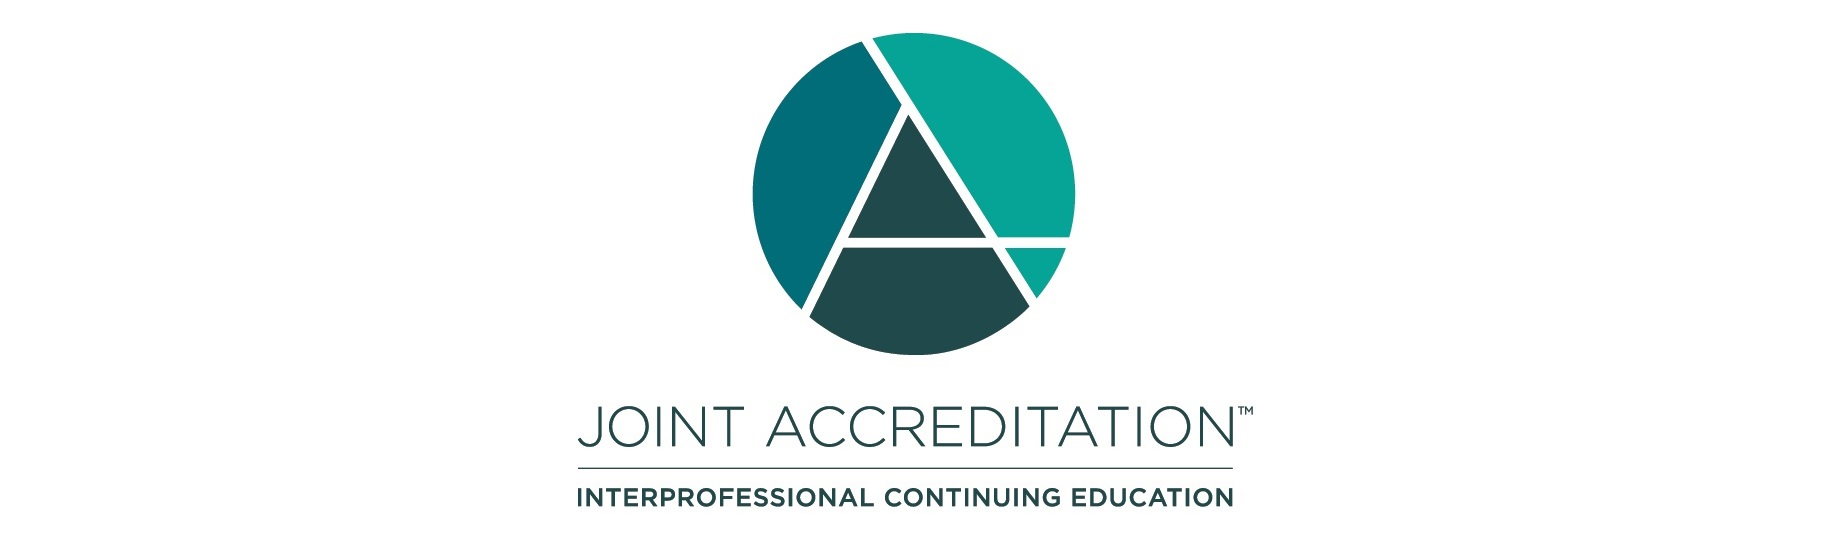 Getting Started with Joint Accreditation for Interprofessional Continuing Education